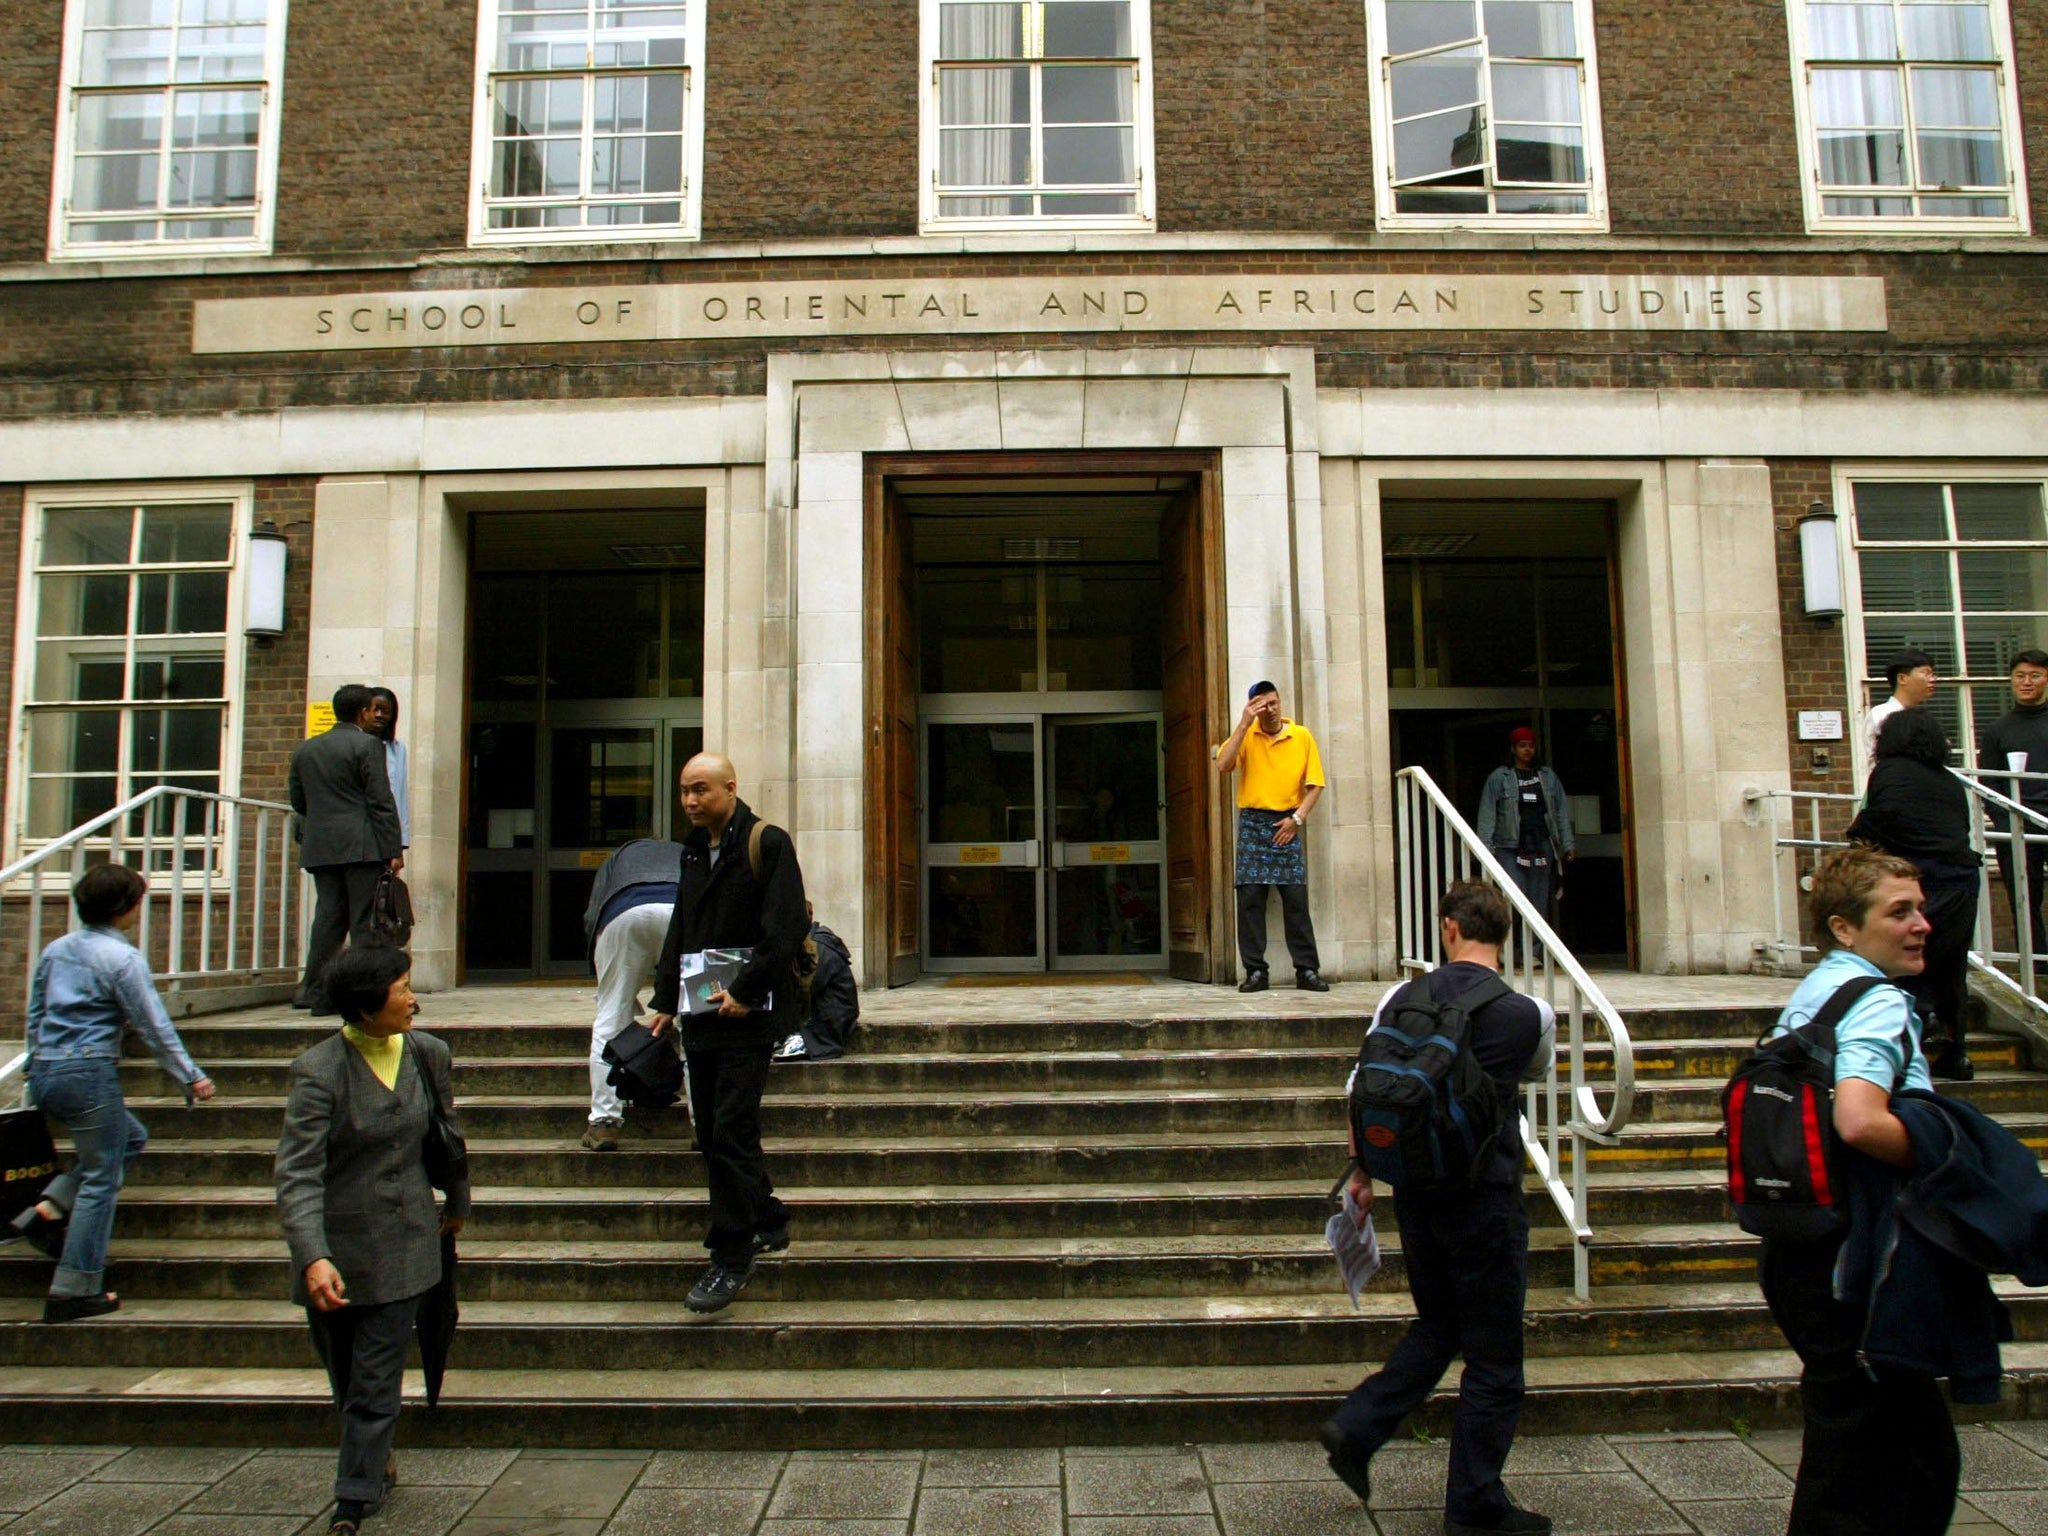 SOAS students call for 'white philosophers to be dropped from curriculum'